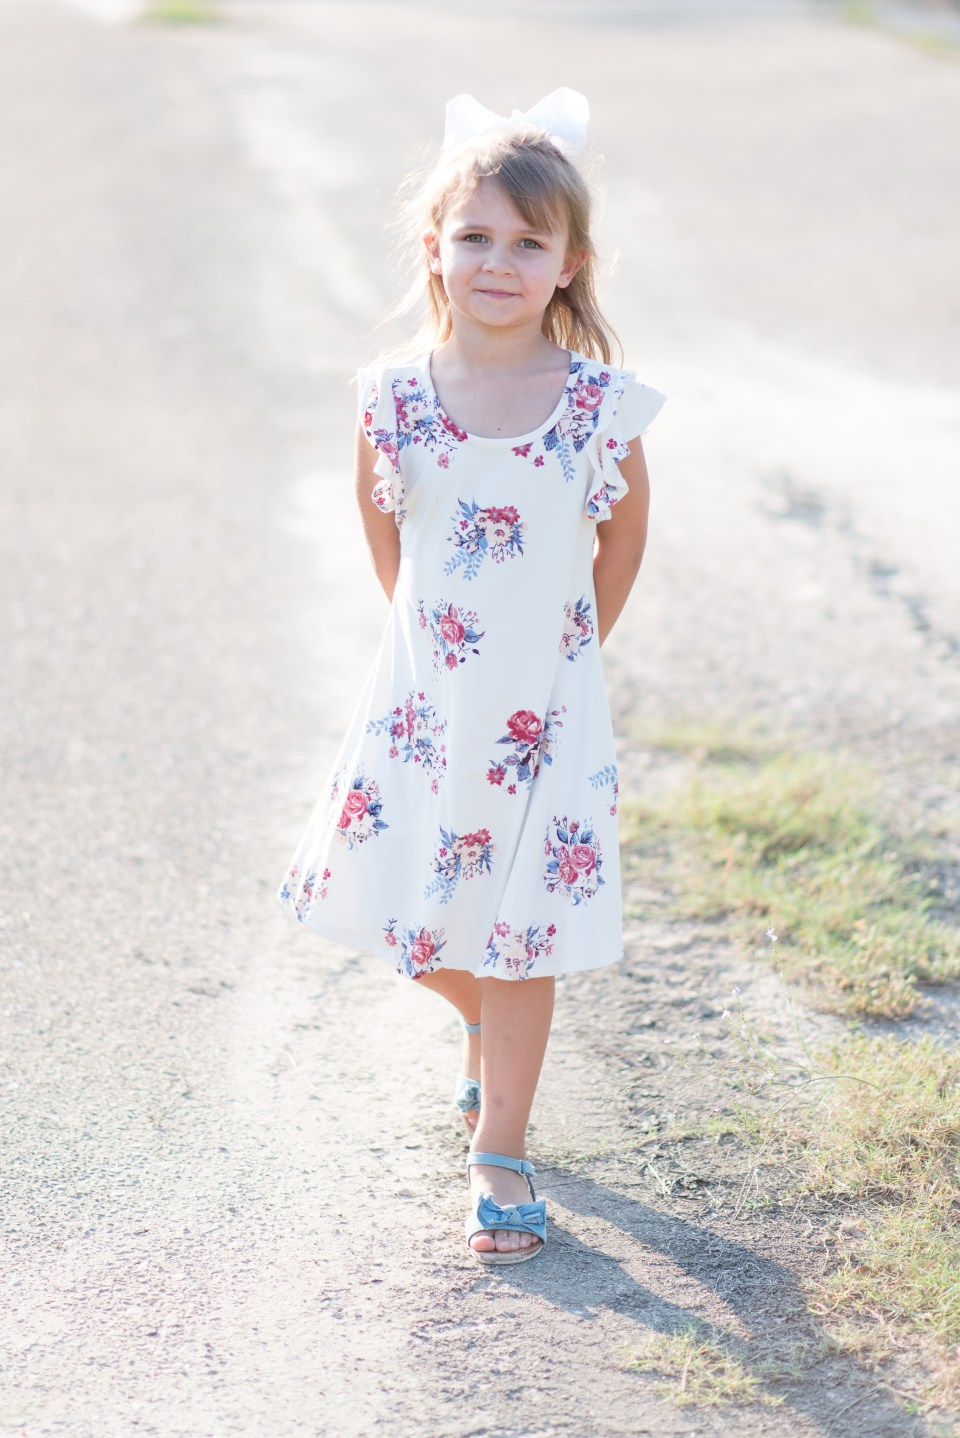 Kingwood Photographer's annual letter to her daughter for her 4th birthday